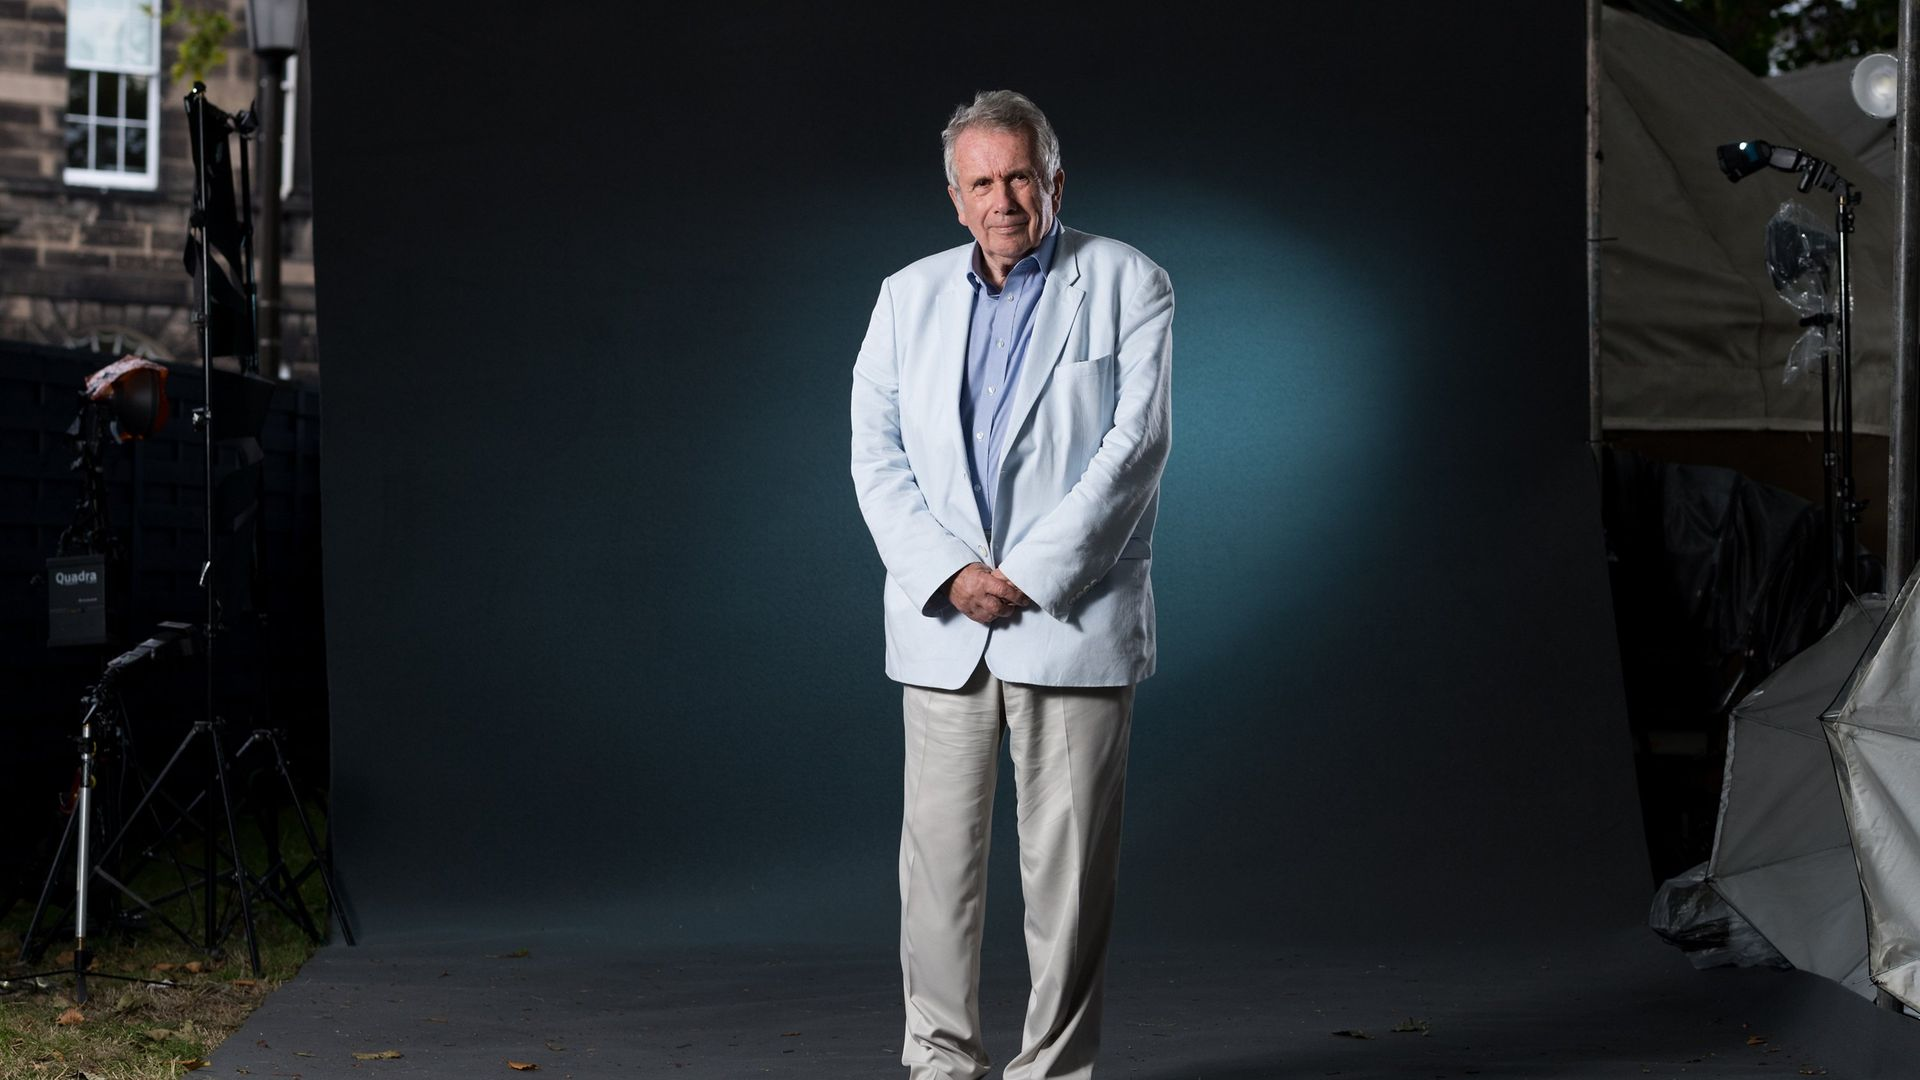 Veteran: British UNICEF Ambassador and former broadcast war reporter Martin Bell attends a photocall during the annual Edinburgh International Book Festival in 2017 (Photo by Roberto Ricciuti/Getty Images) - Credit: Getty Images